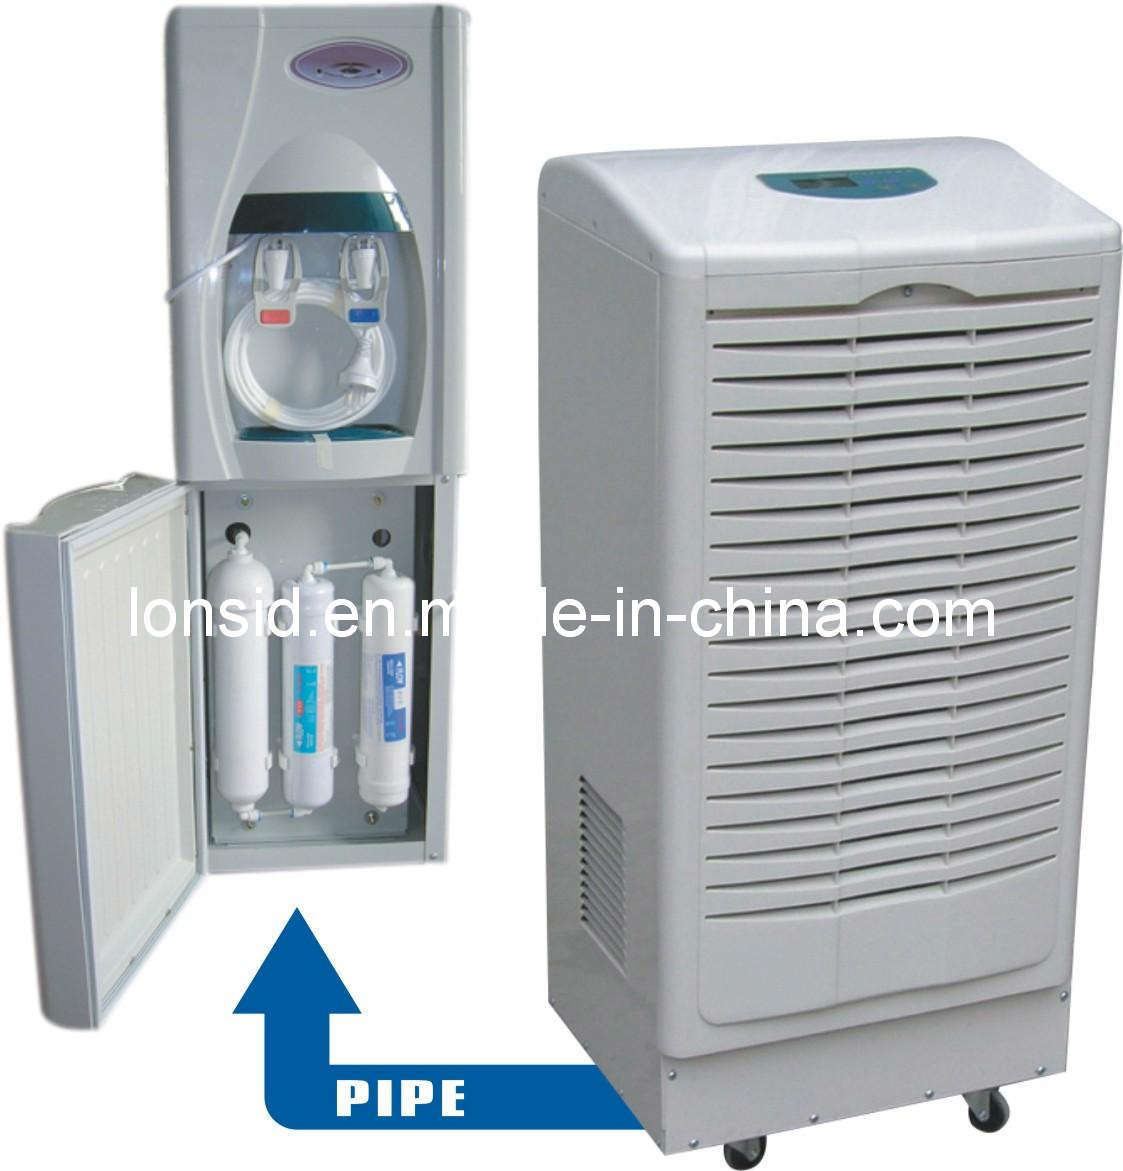 Atmospheric Water Generator ~ Others shanghai lonsid import and export co ltd page